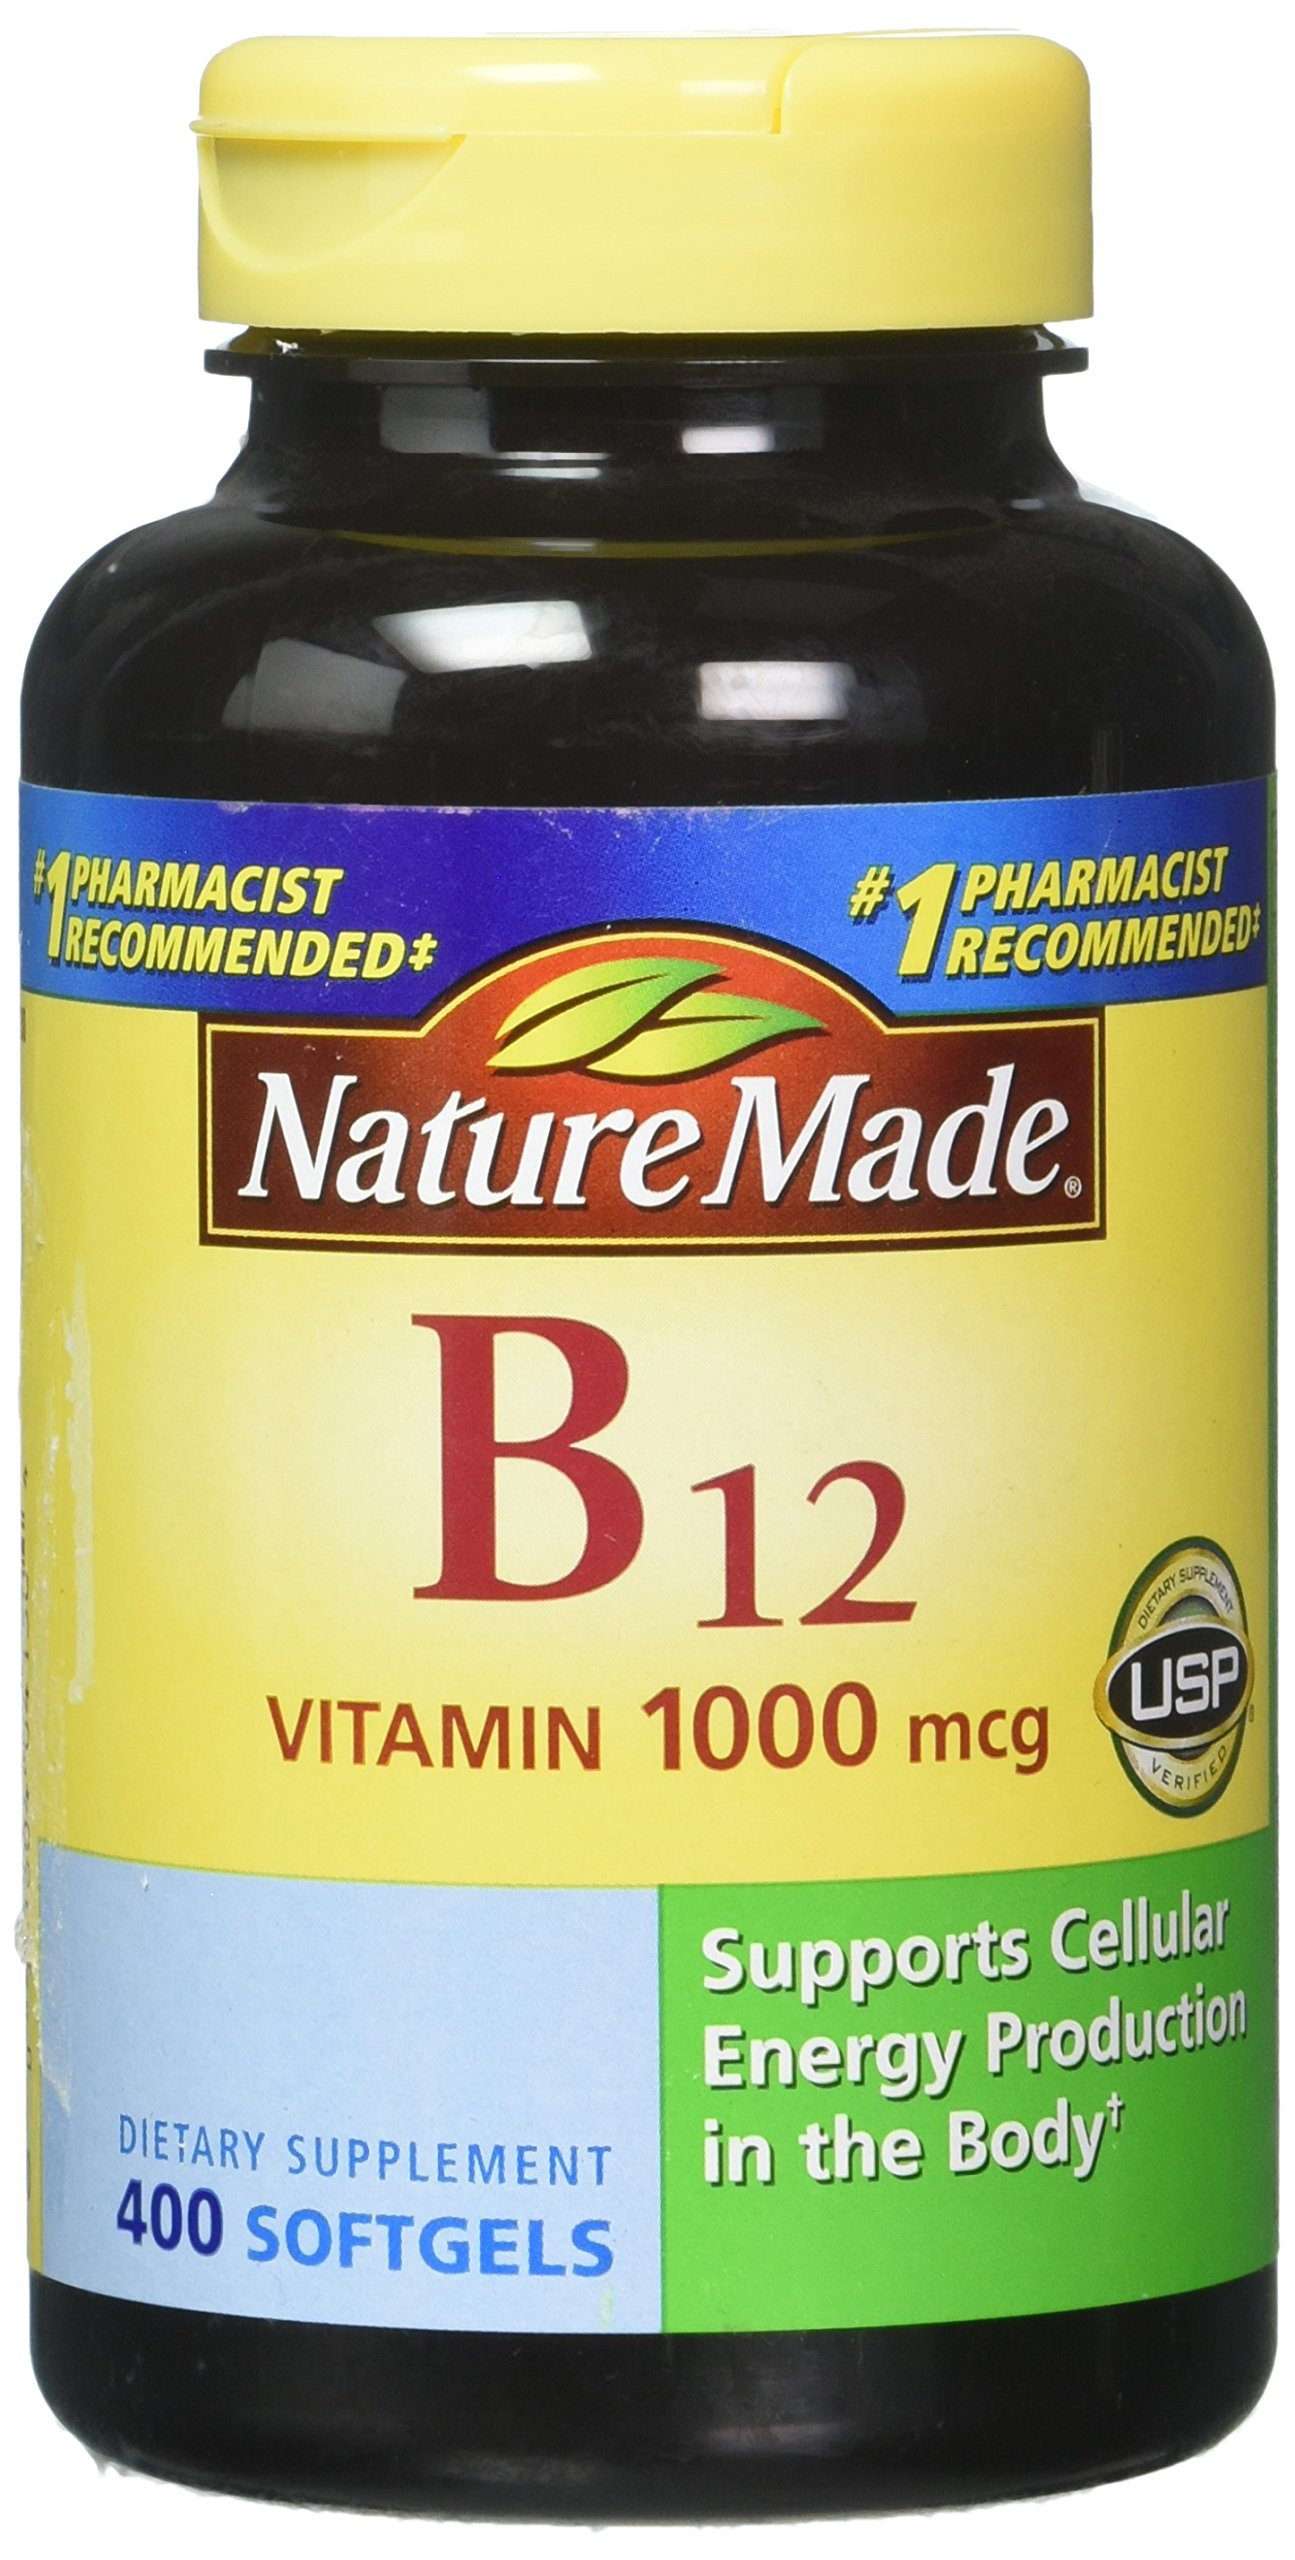 Nature Made Vitamin B-12 1000mcg 400 Softgels by Nature Made